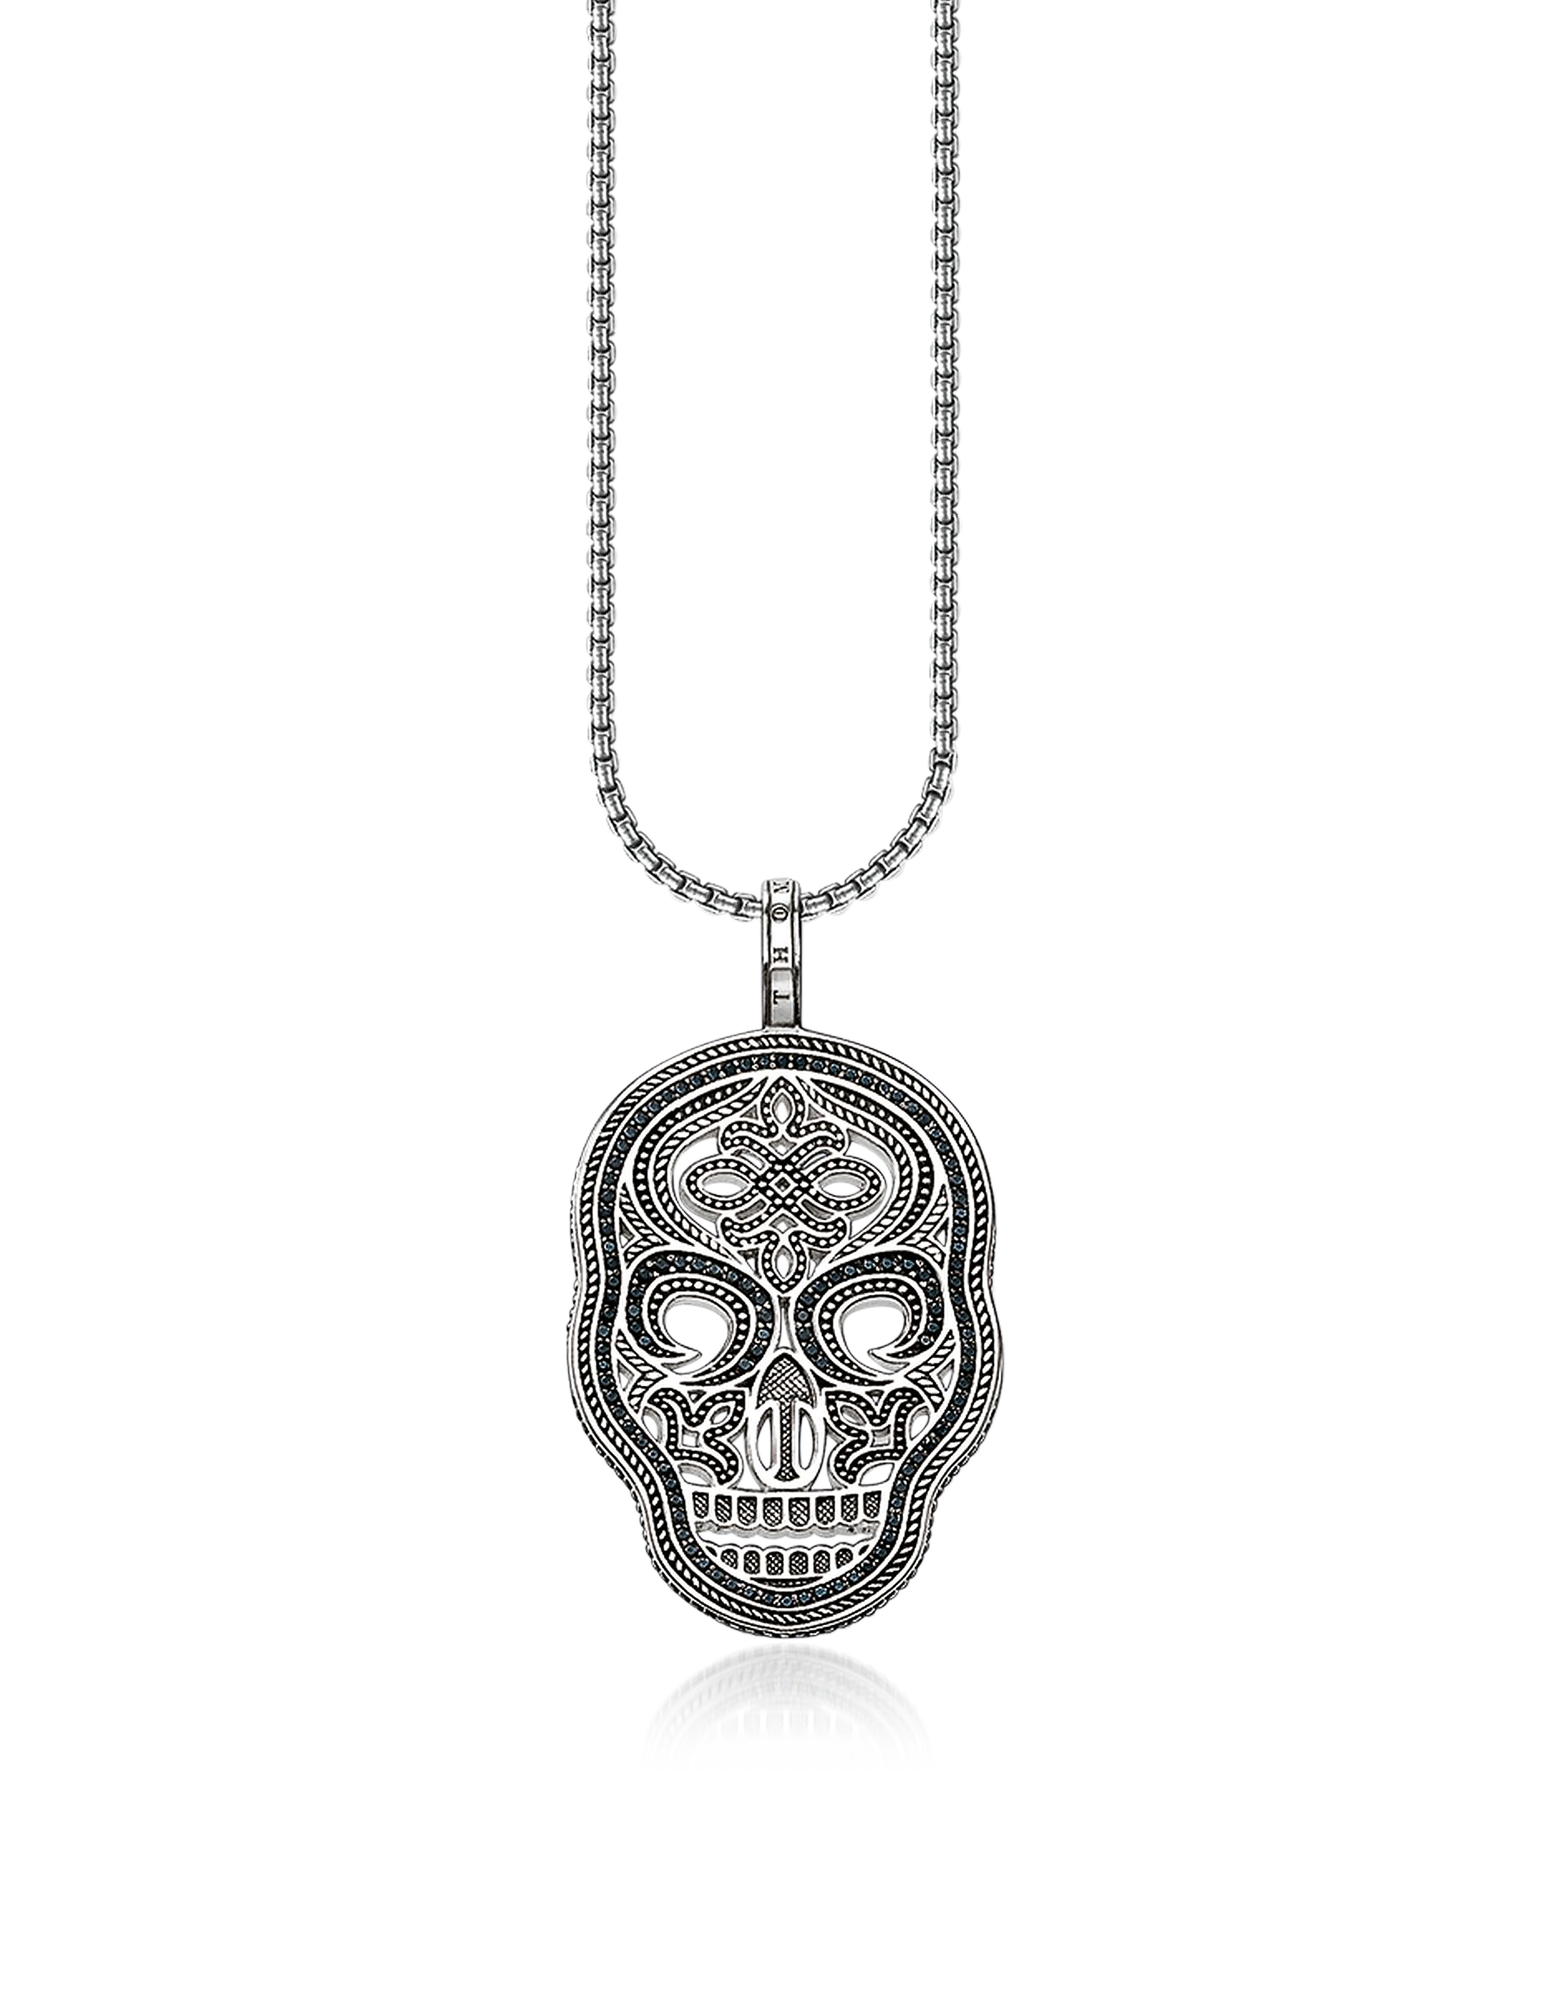 Image of Blackened 925 Sterling Silver and Zirconia Pave Necklace w/Skull Mask Pendant